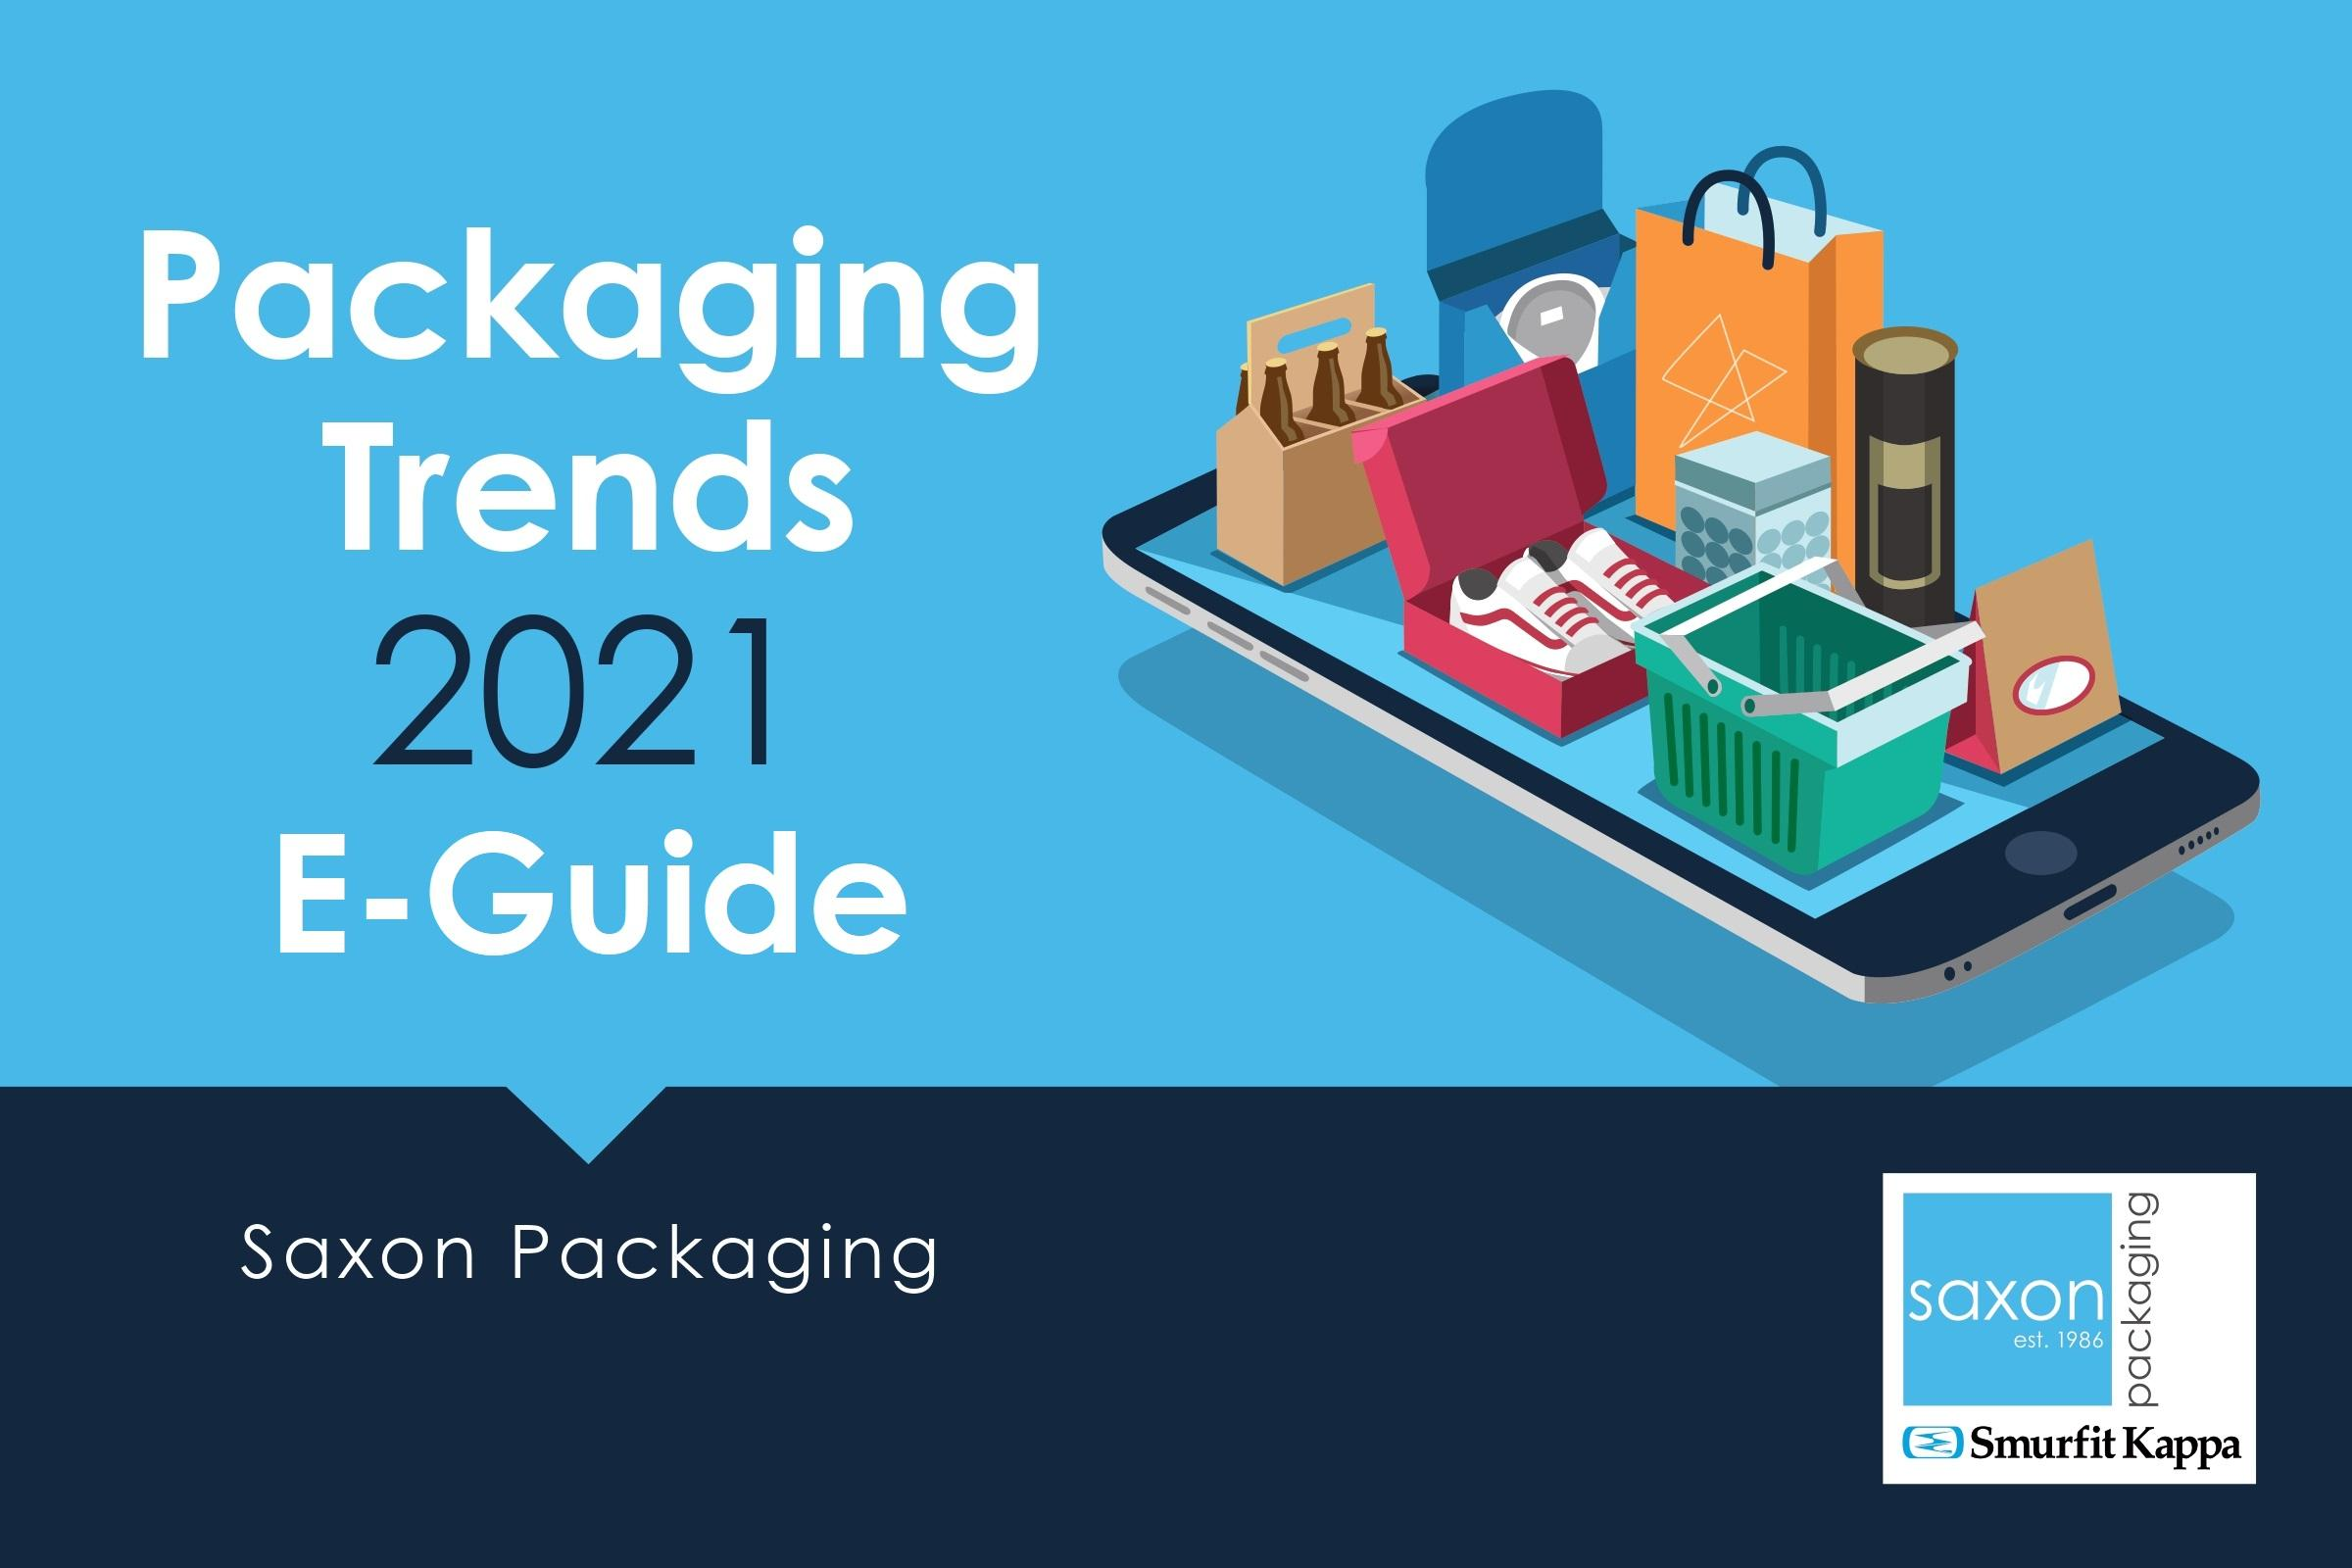 Packaging Trends 2021 E-Guide - Saxon Packaging